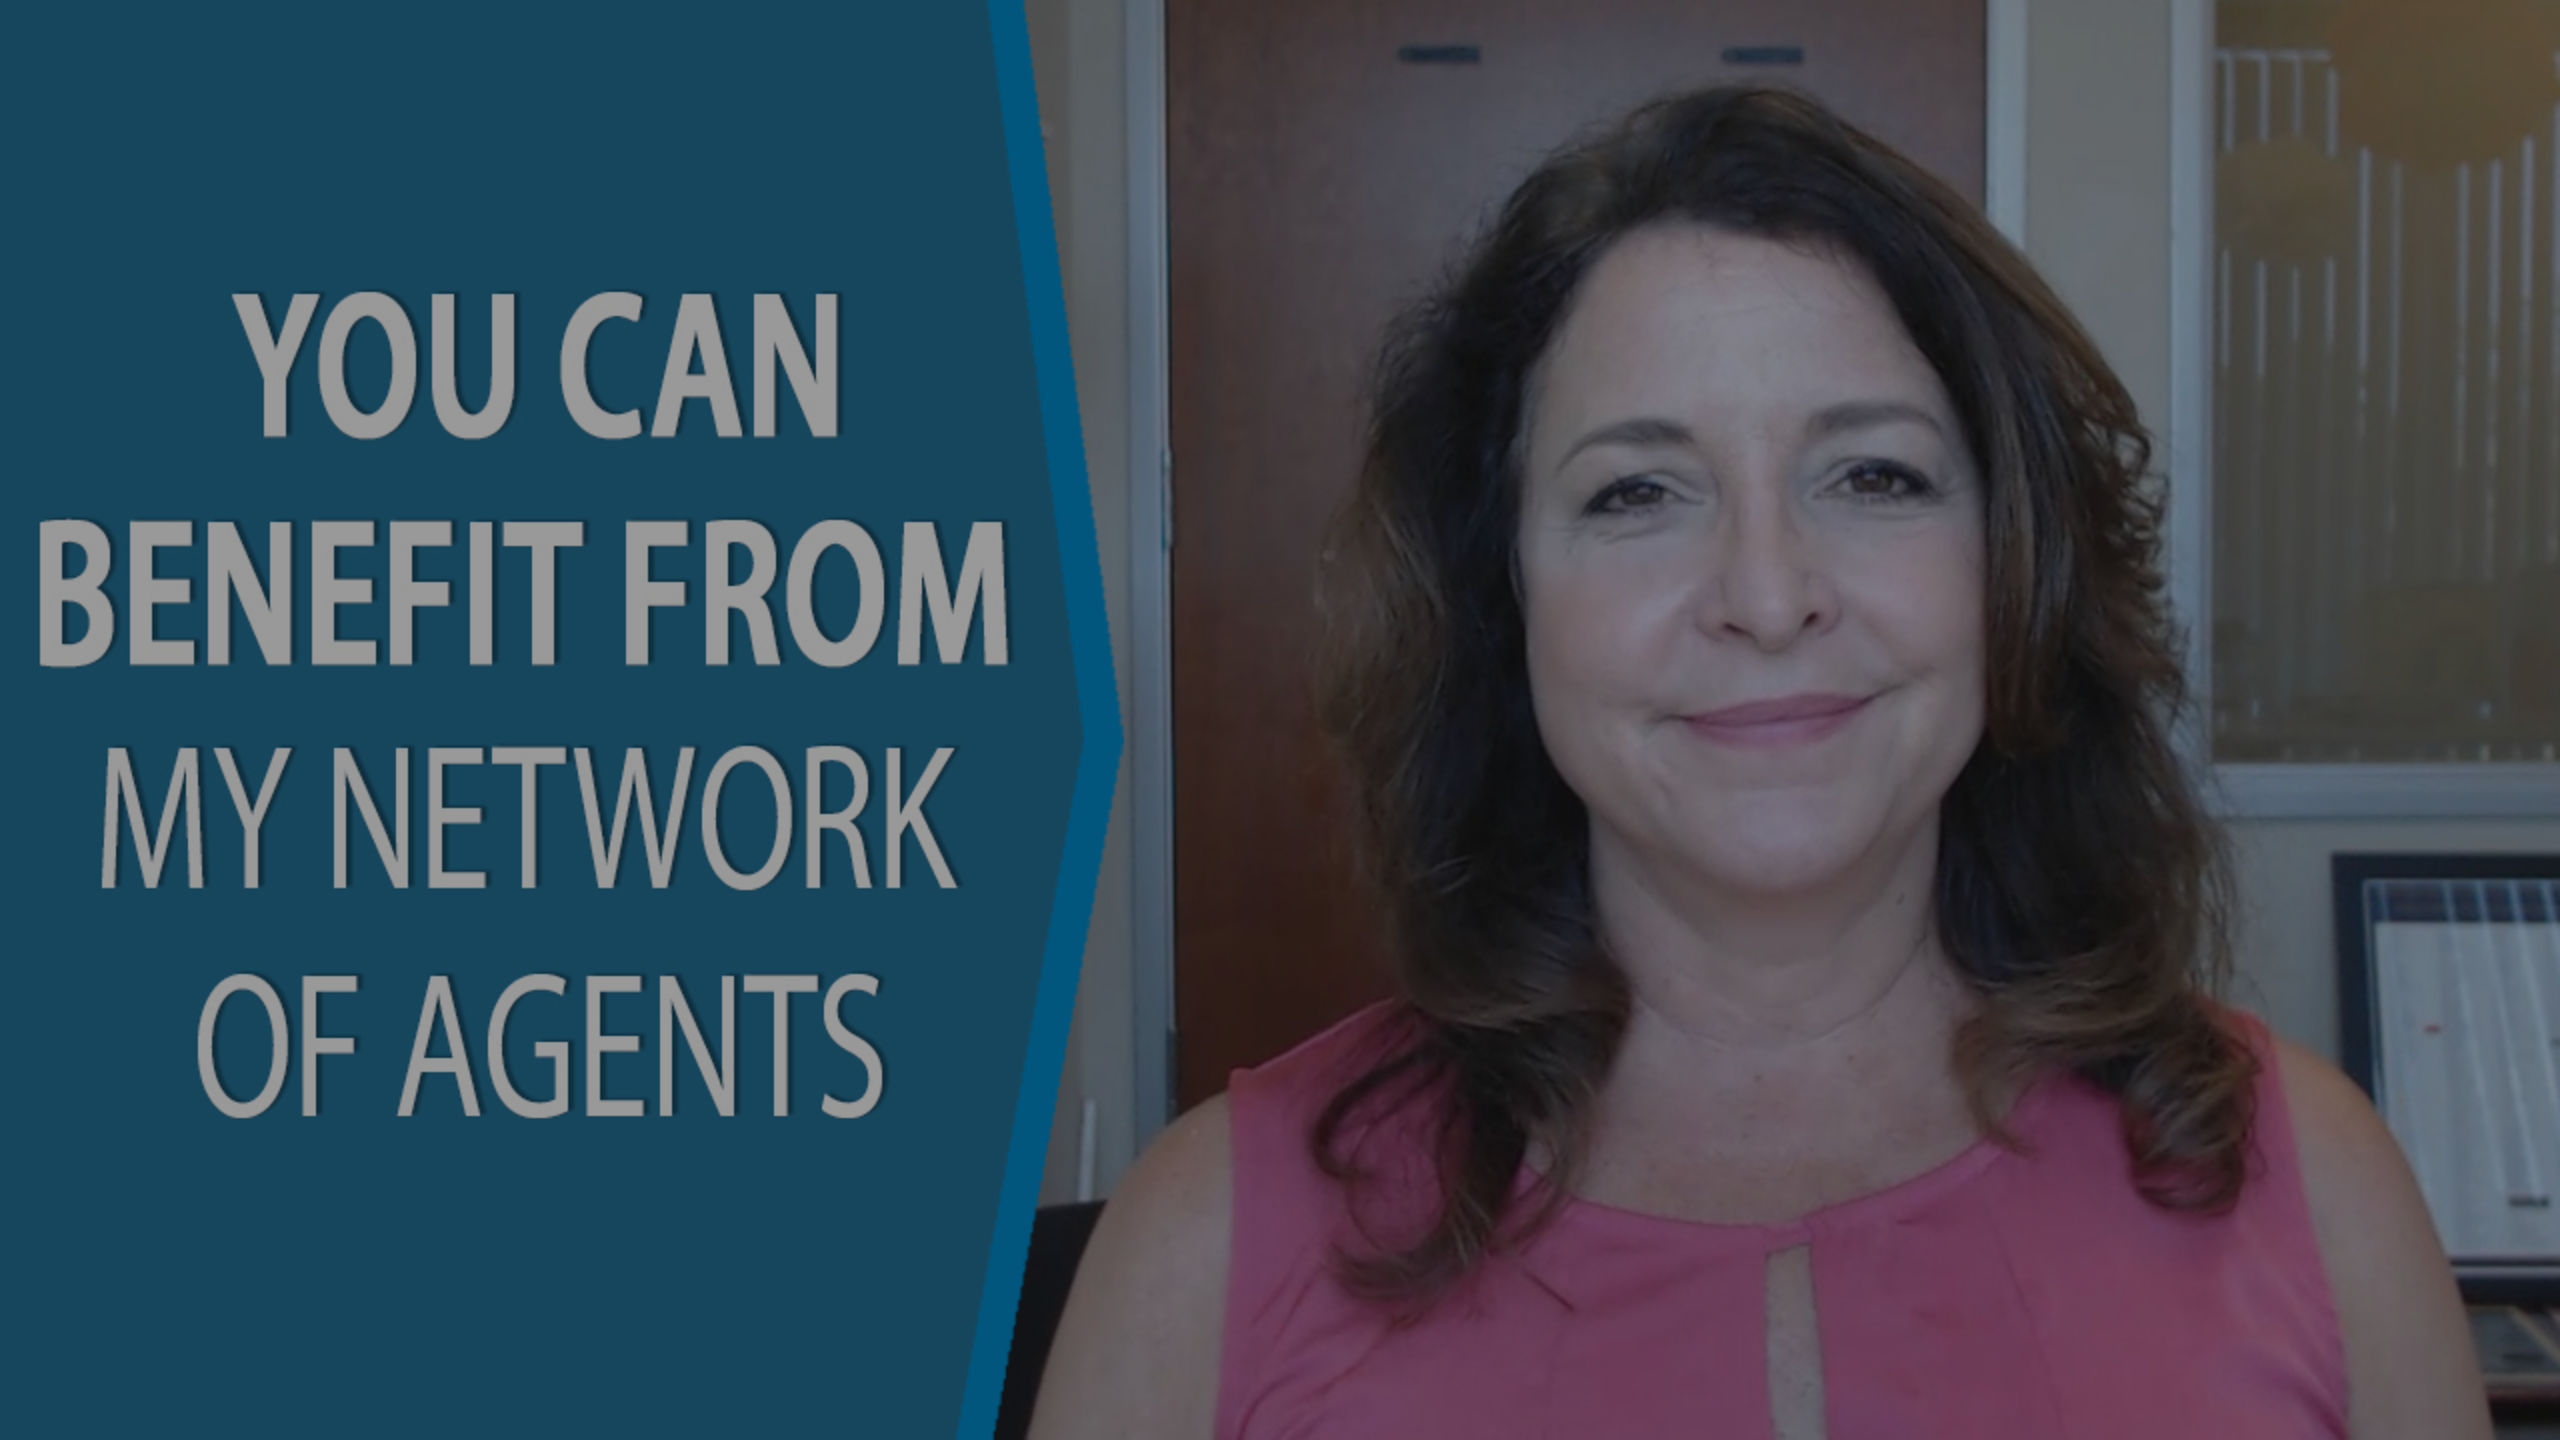 Q: Can You Benefit From My Network of Agents?